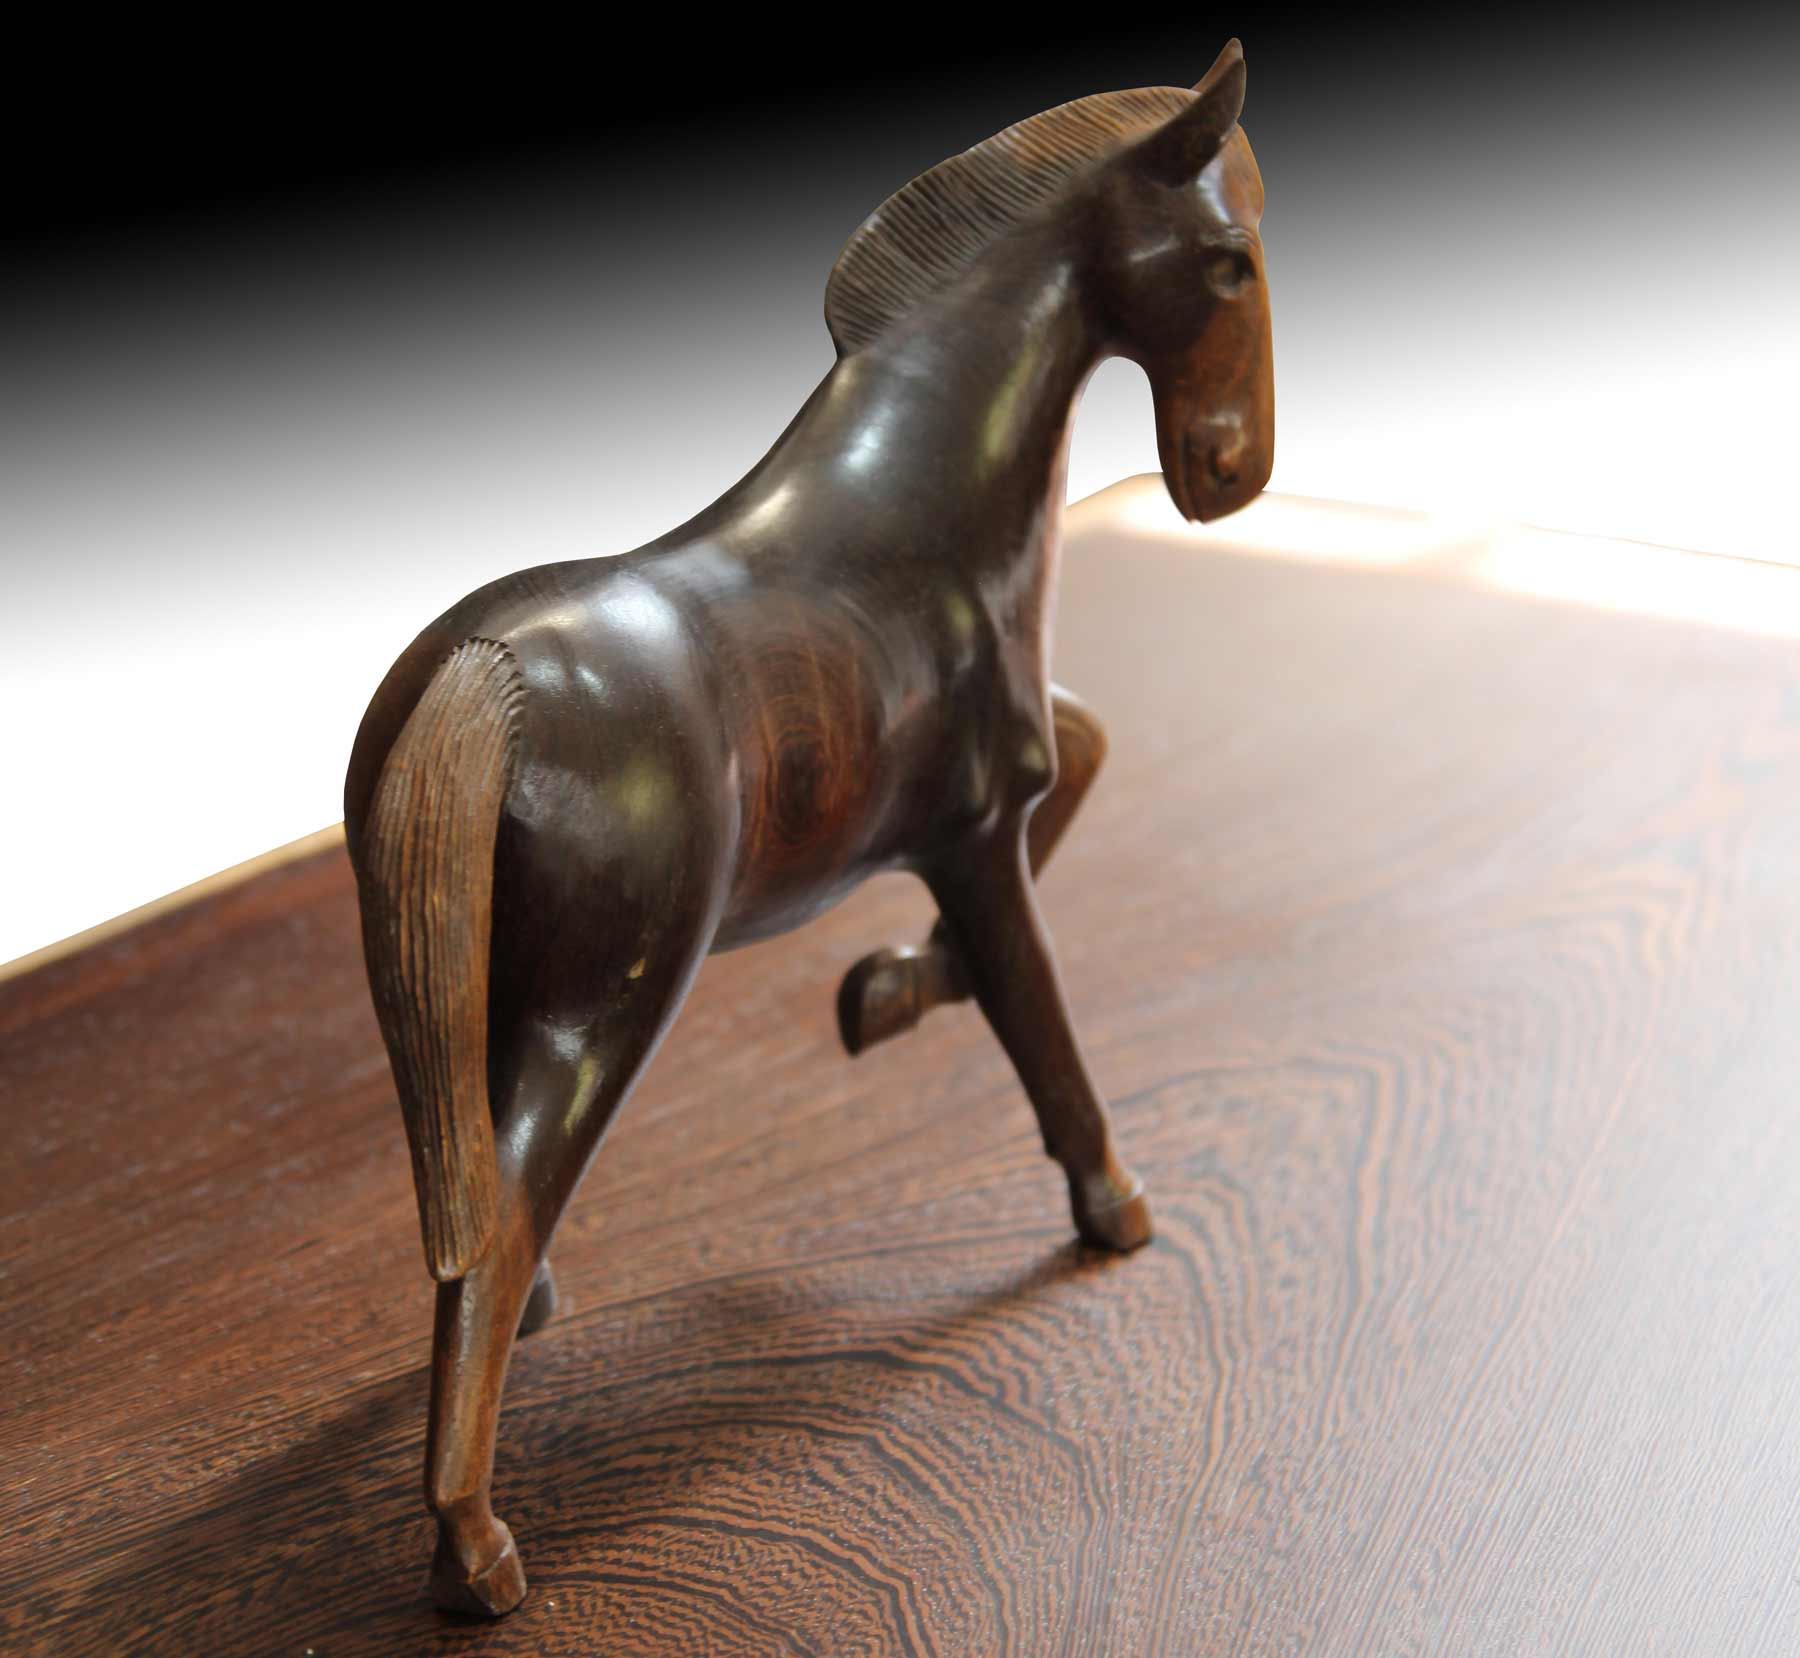 Wooden horse fugurine on live edge Suar wood table